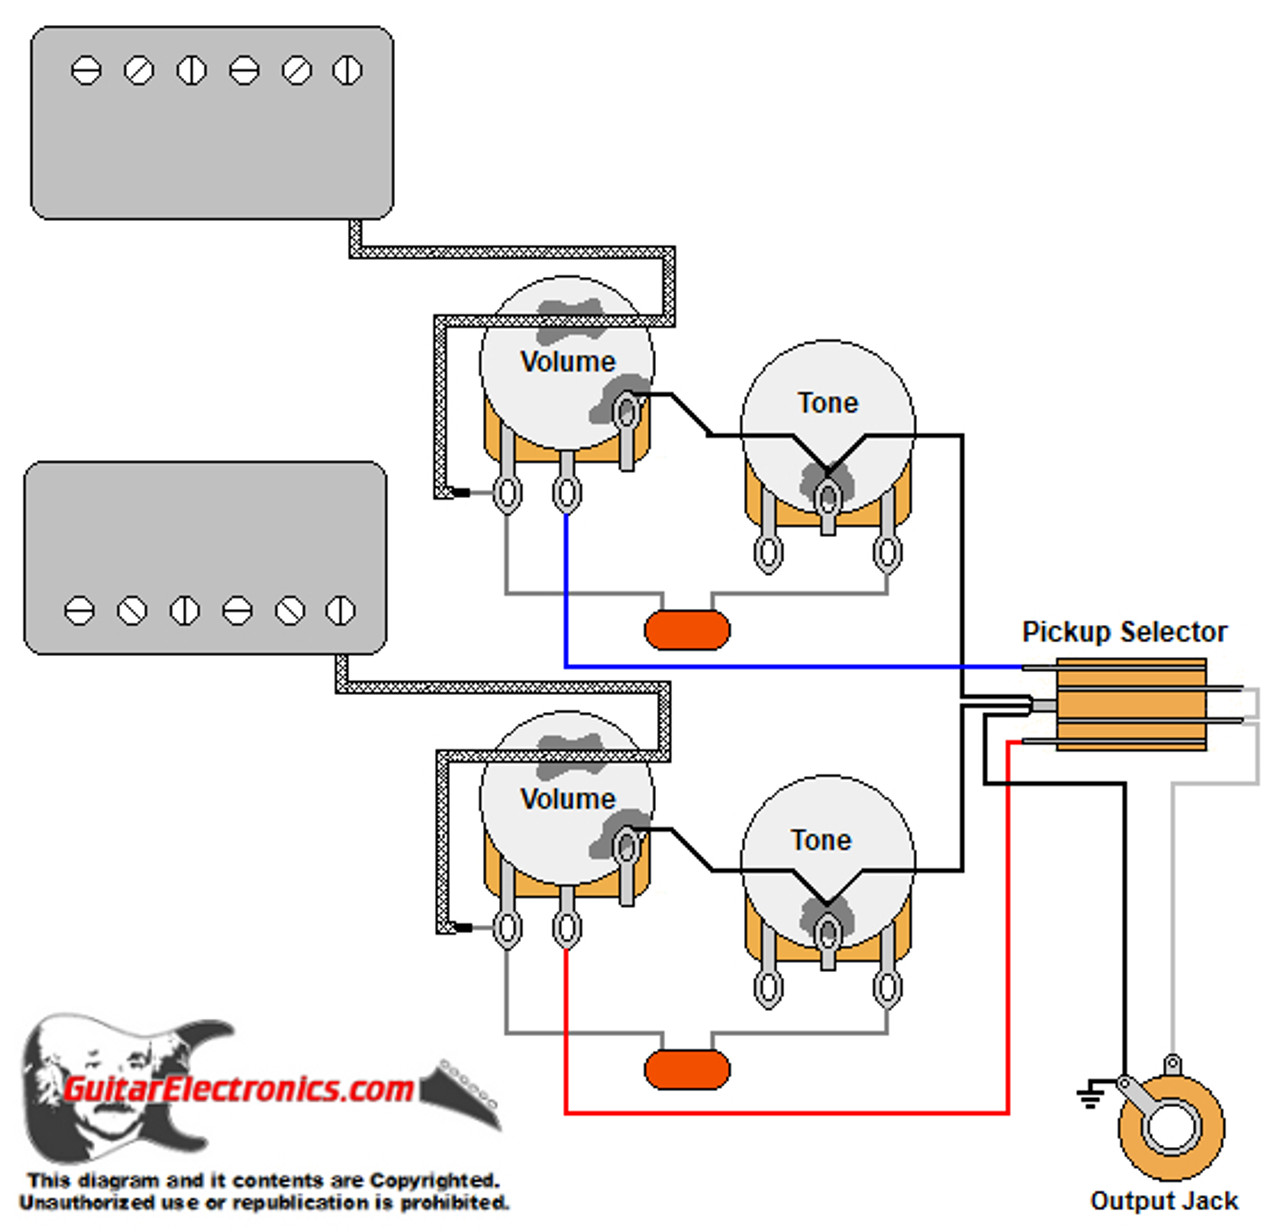 Diagram Wiring Diagram 2 Gibson Humbuckers With 3 Way Toggle Switch